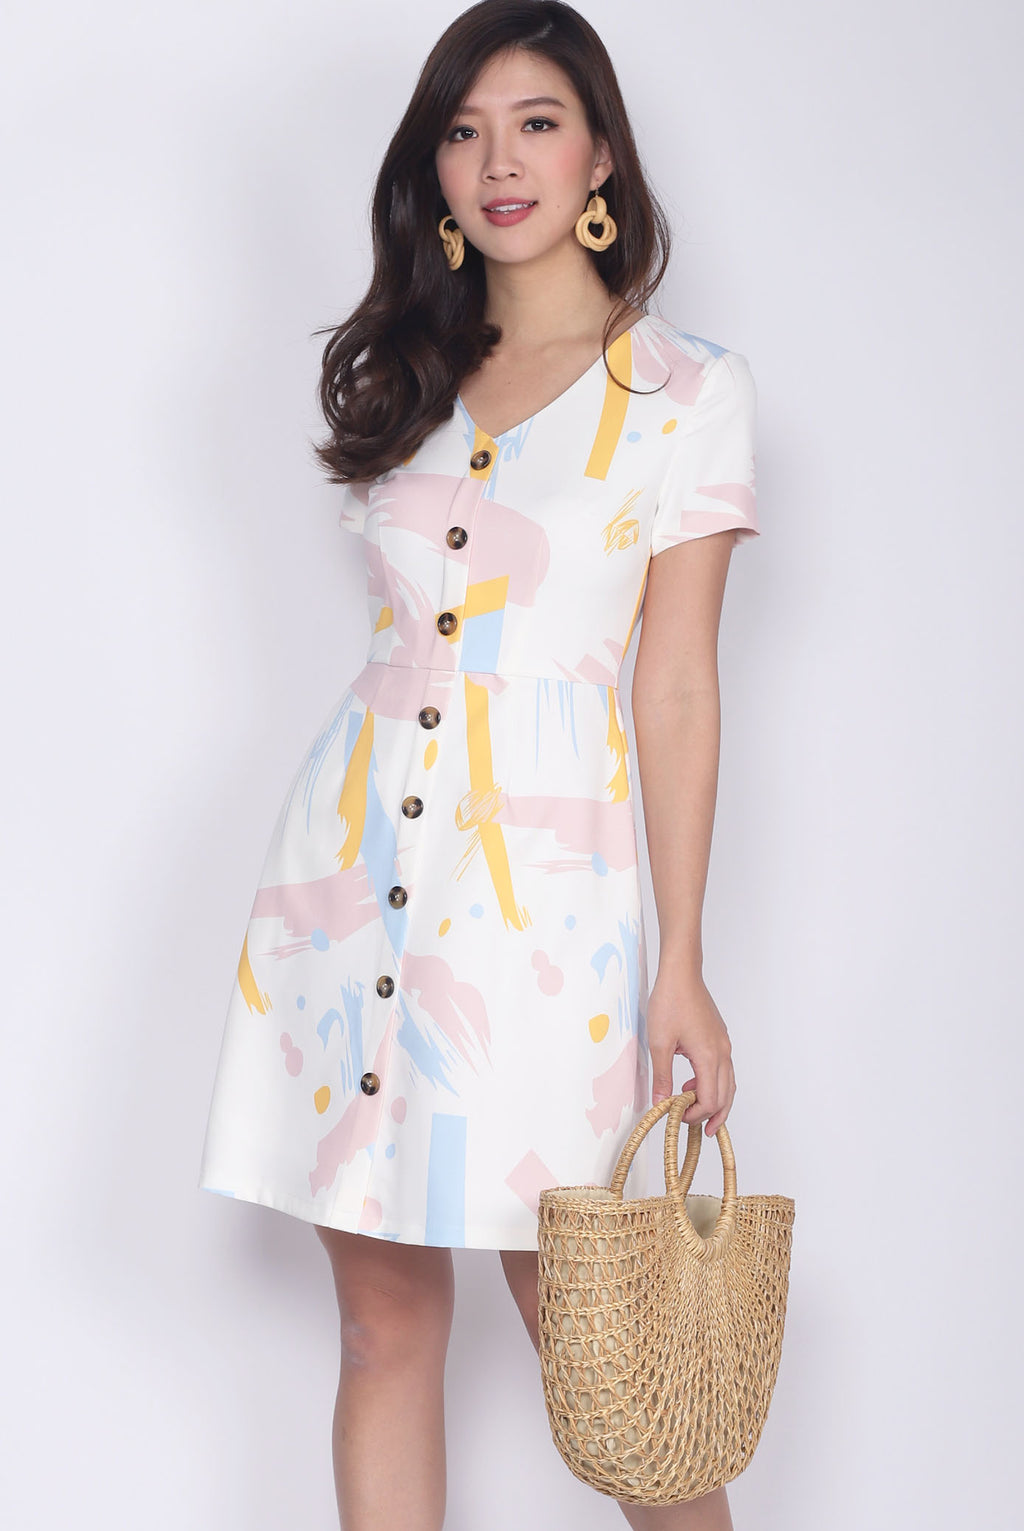 *Restock* Beryan Colourful Paint Sleeved Buttons Dress In White